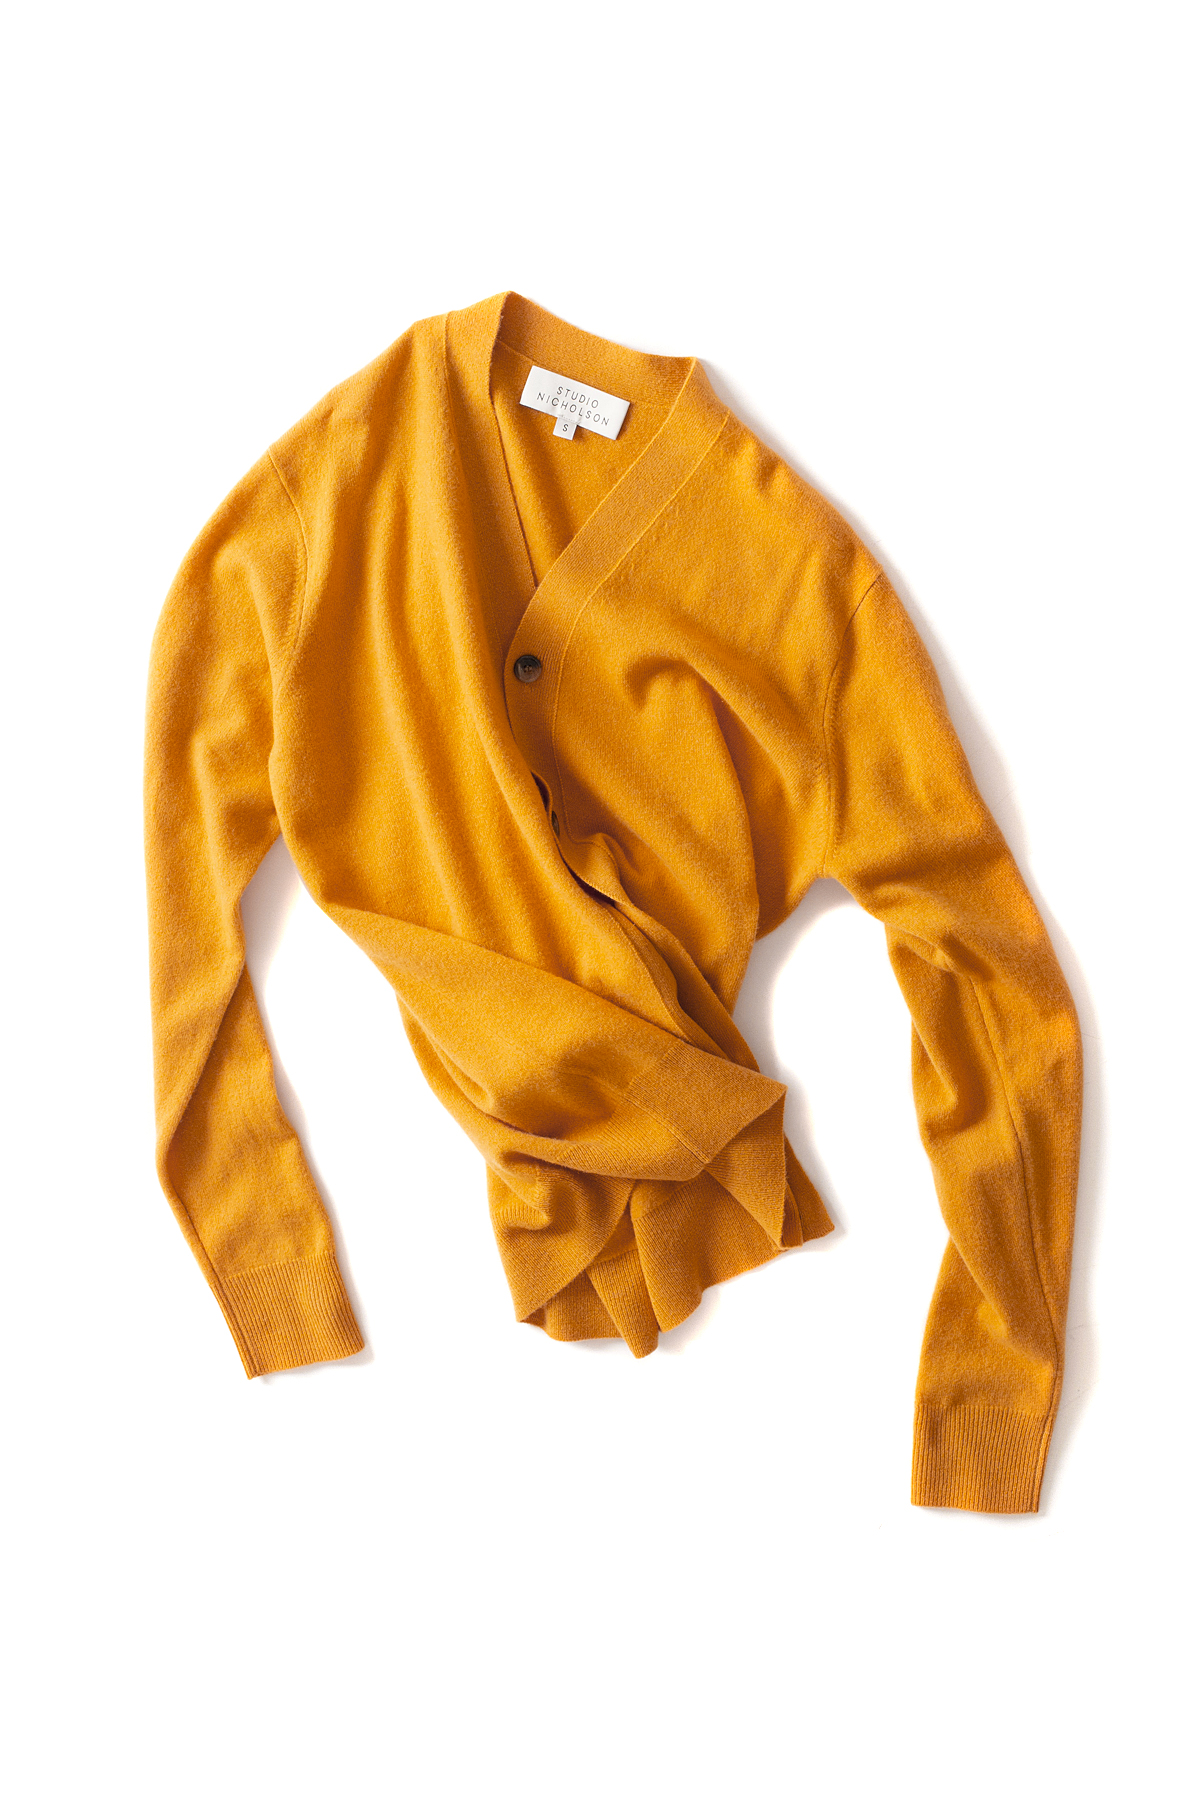 STUDIO NICHOLSON : High Neck Cardigan (Mustard)